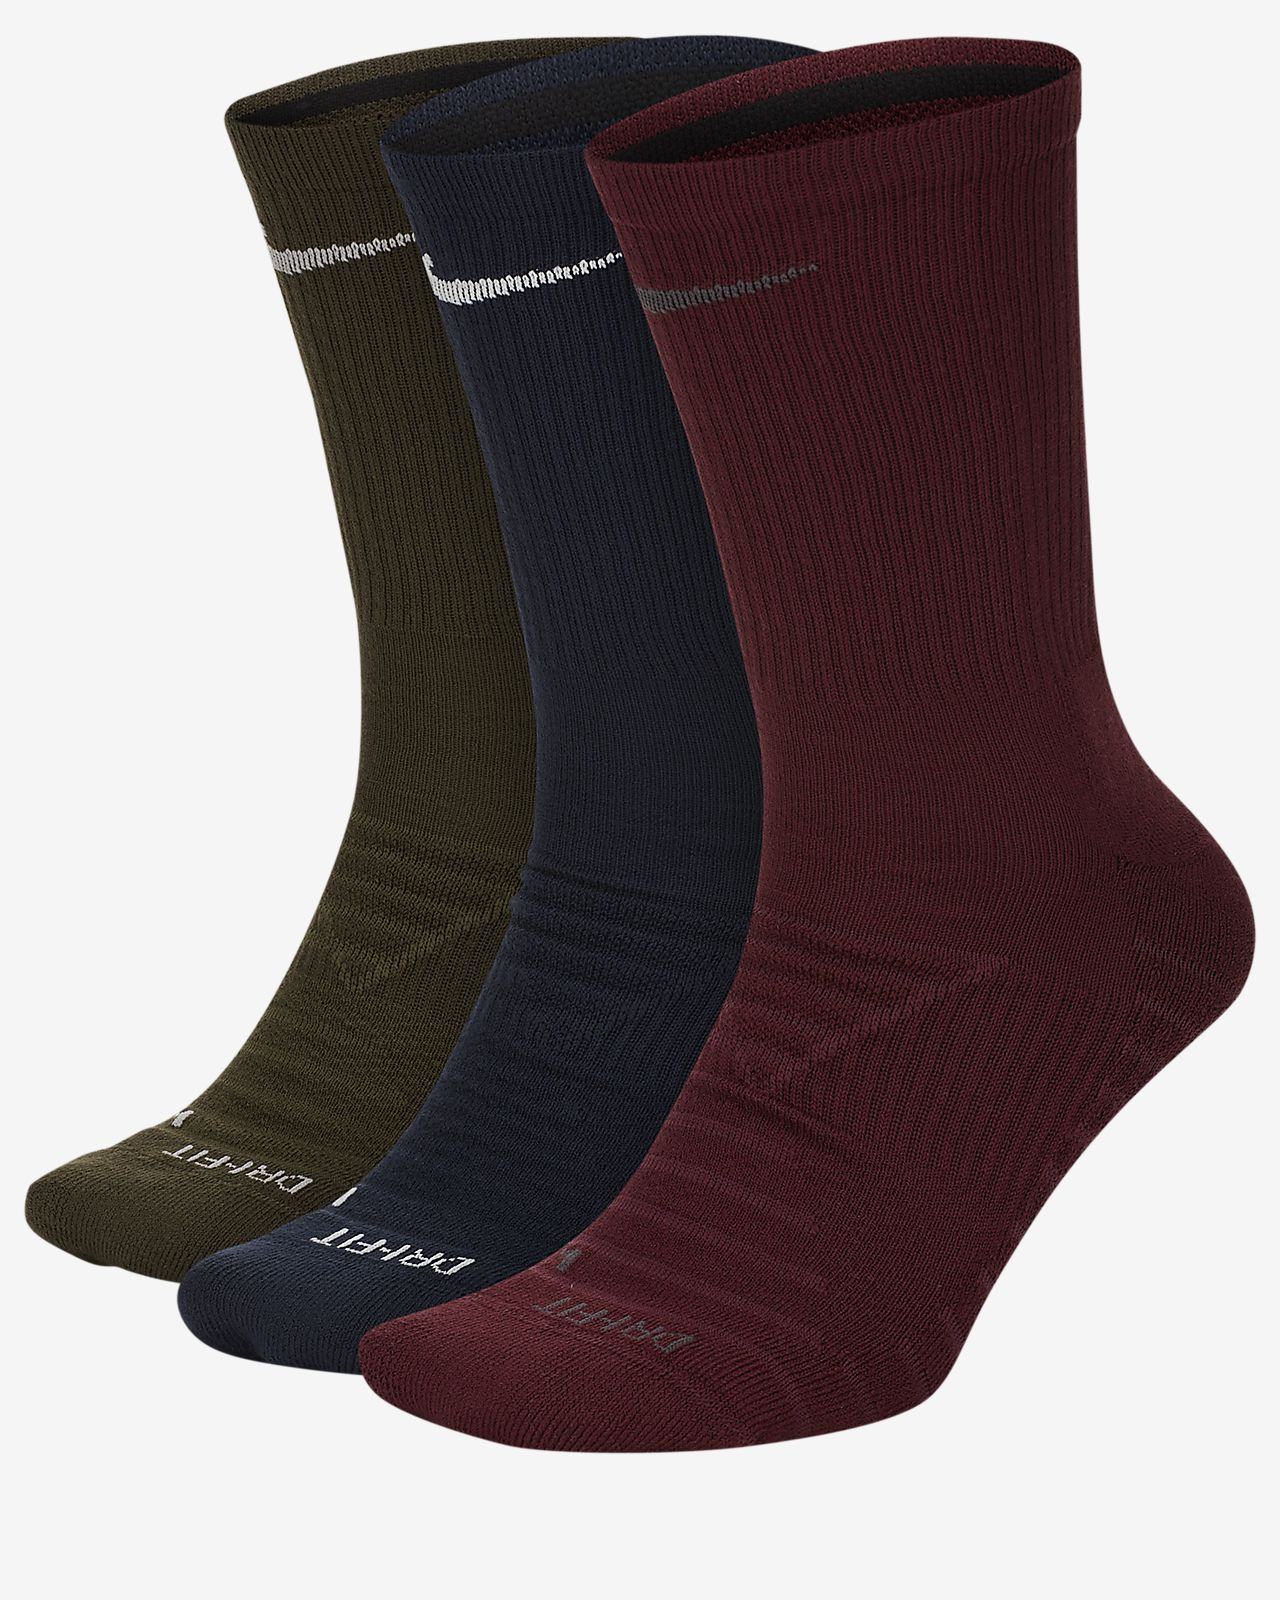 Nike Pro Everyday Max Cushioned Training Crew Socks (3 Pairs)